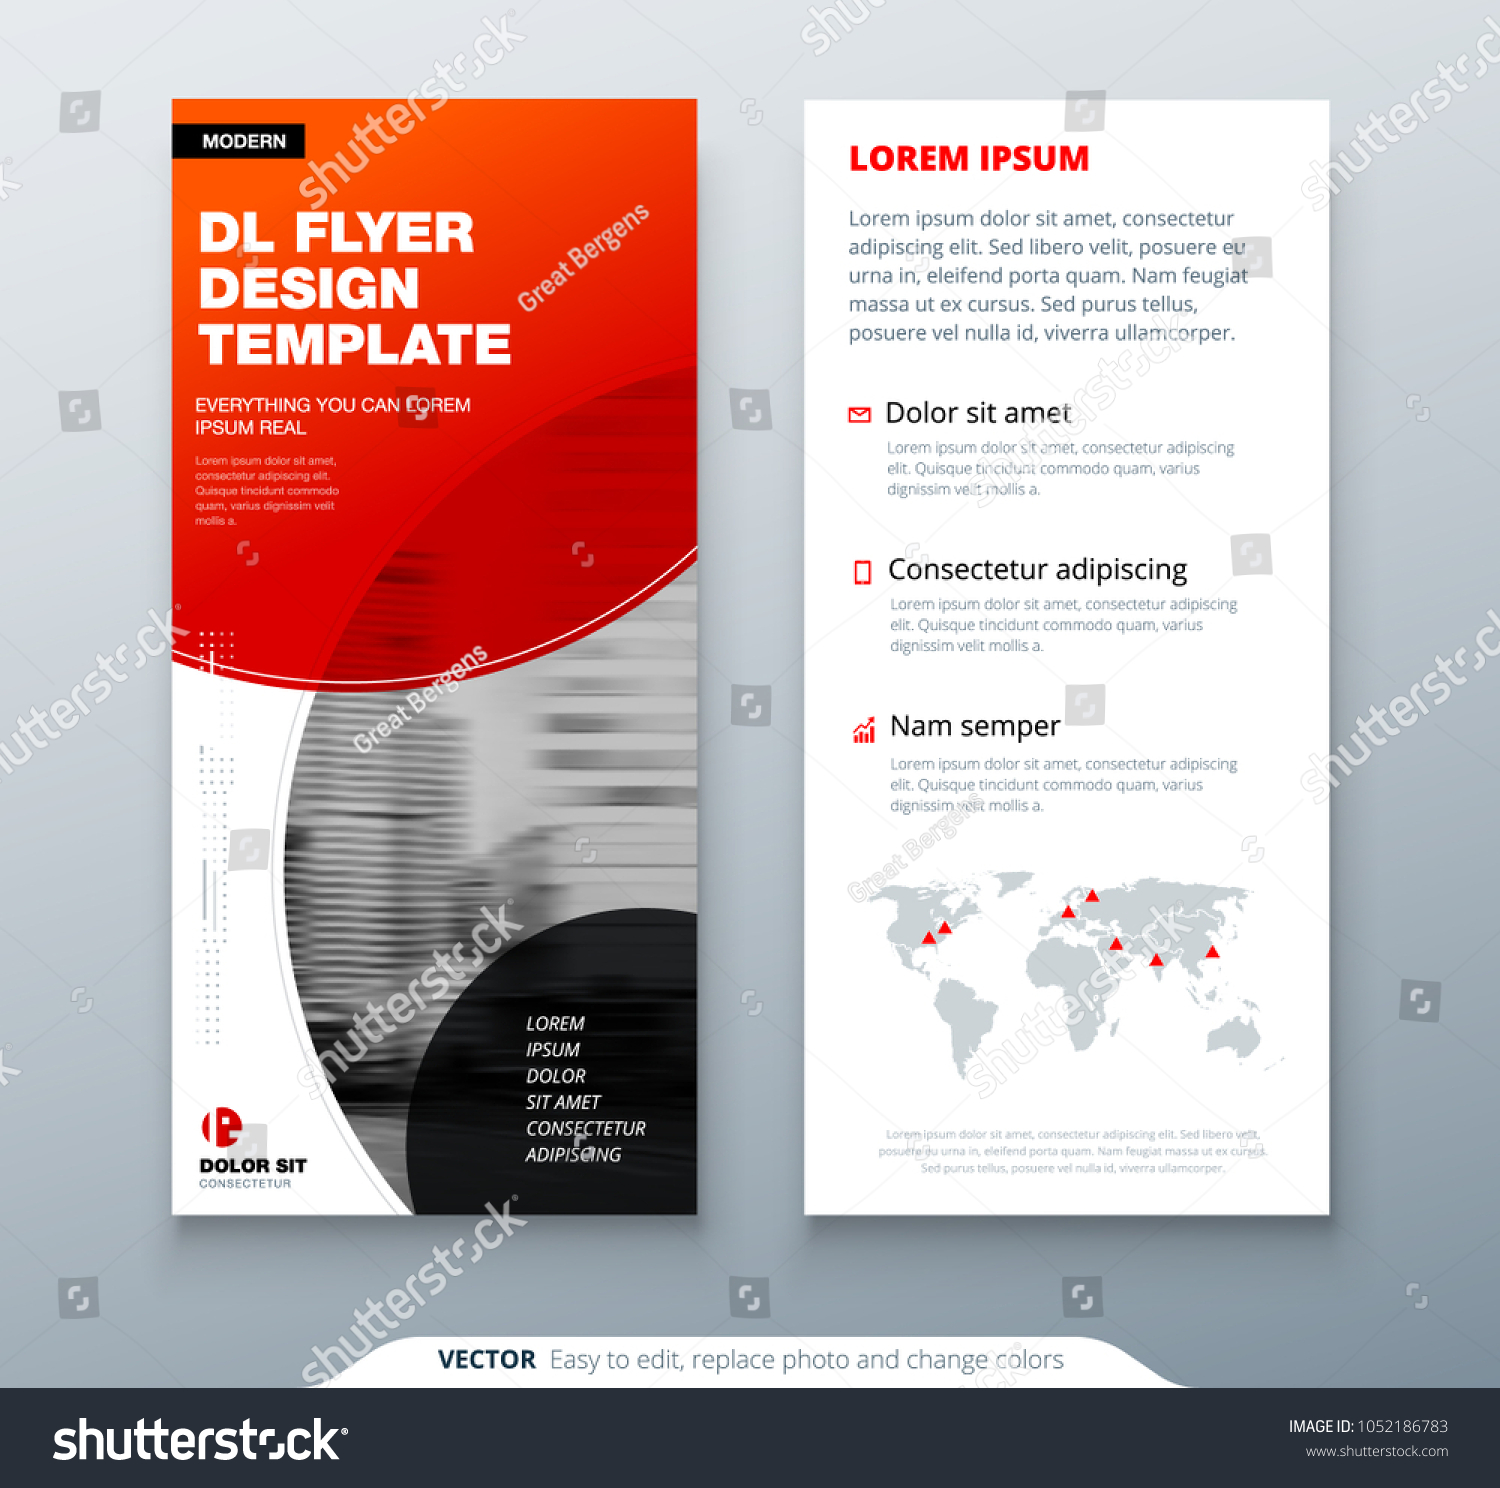 Dl Flyer Design Red Business Template Stock Vector Royalty Free 1052186783